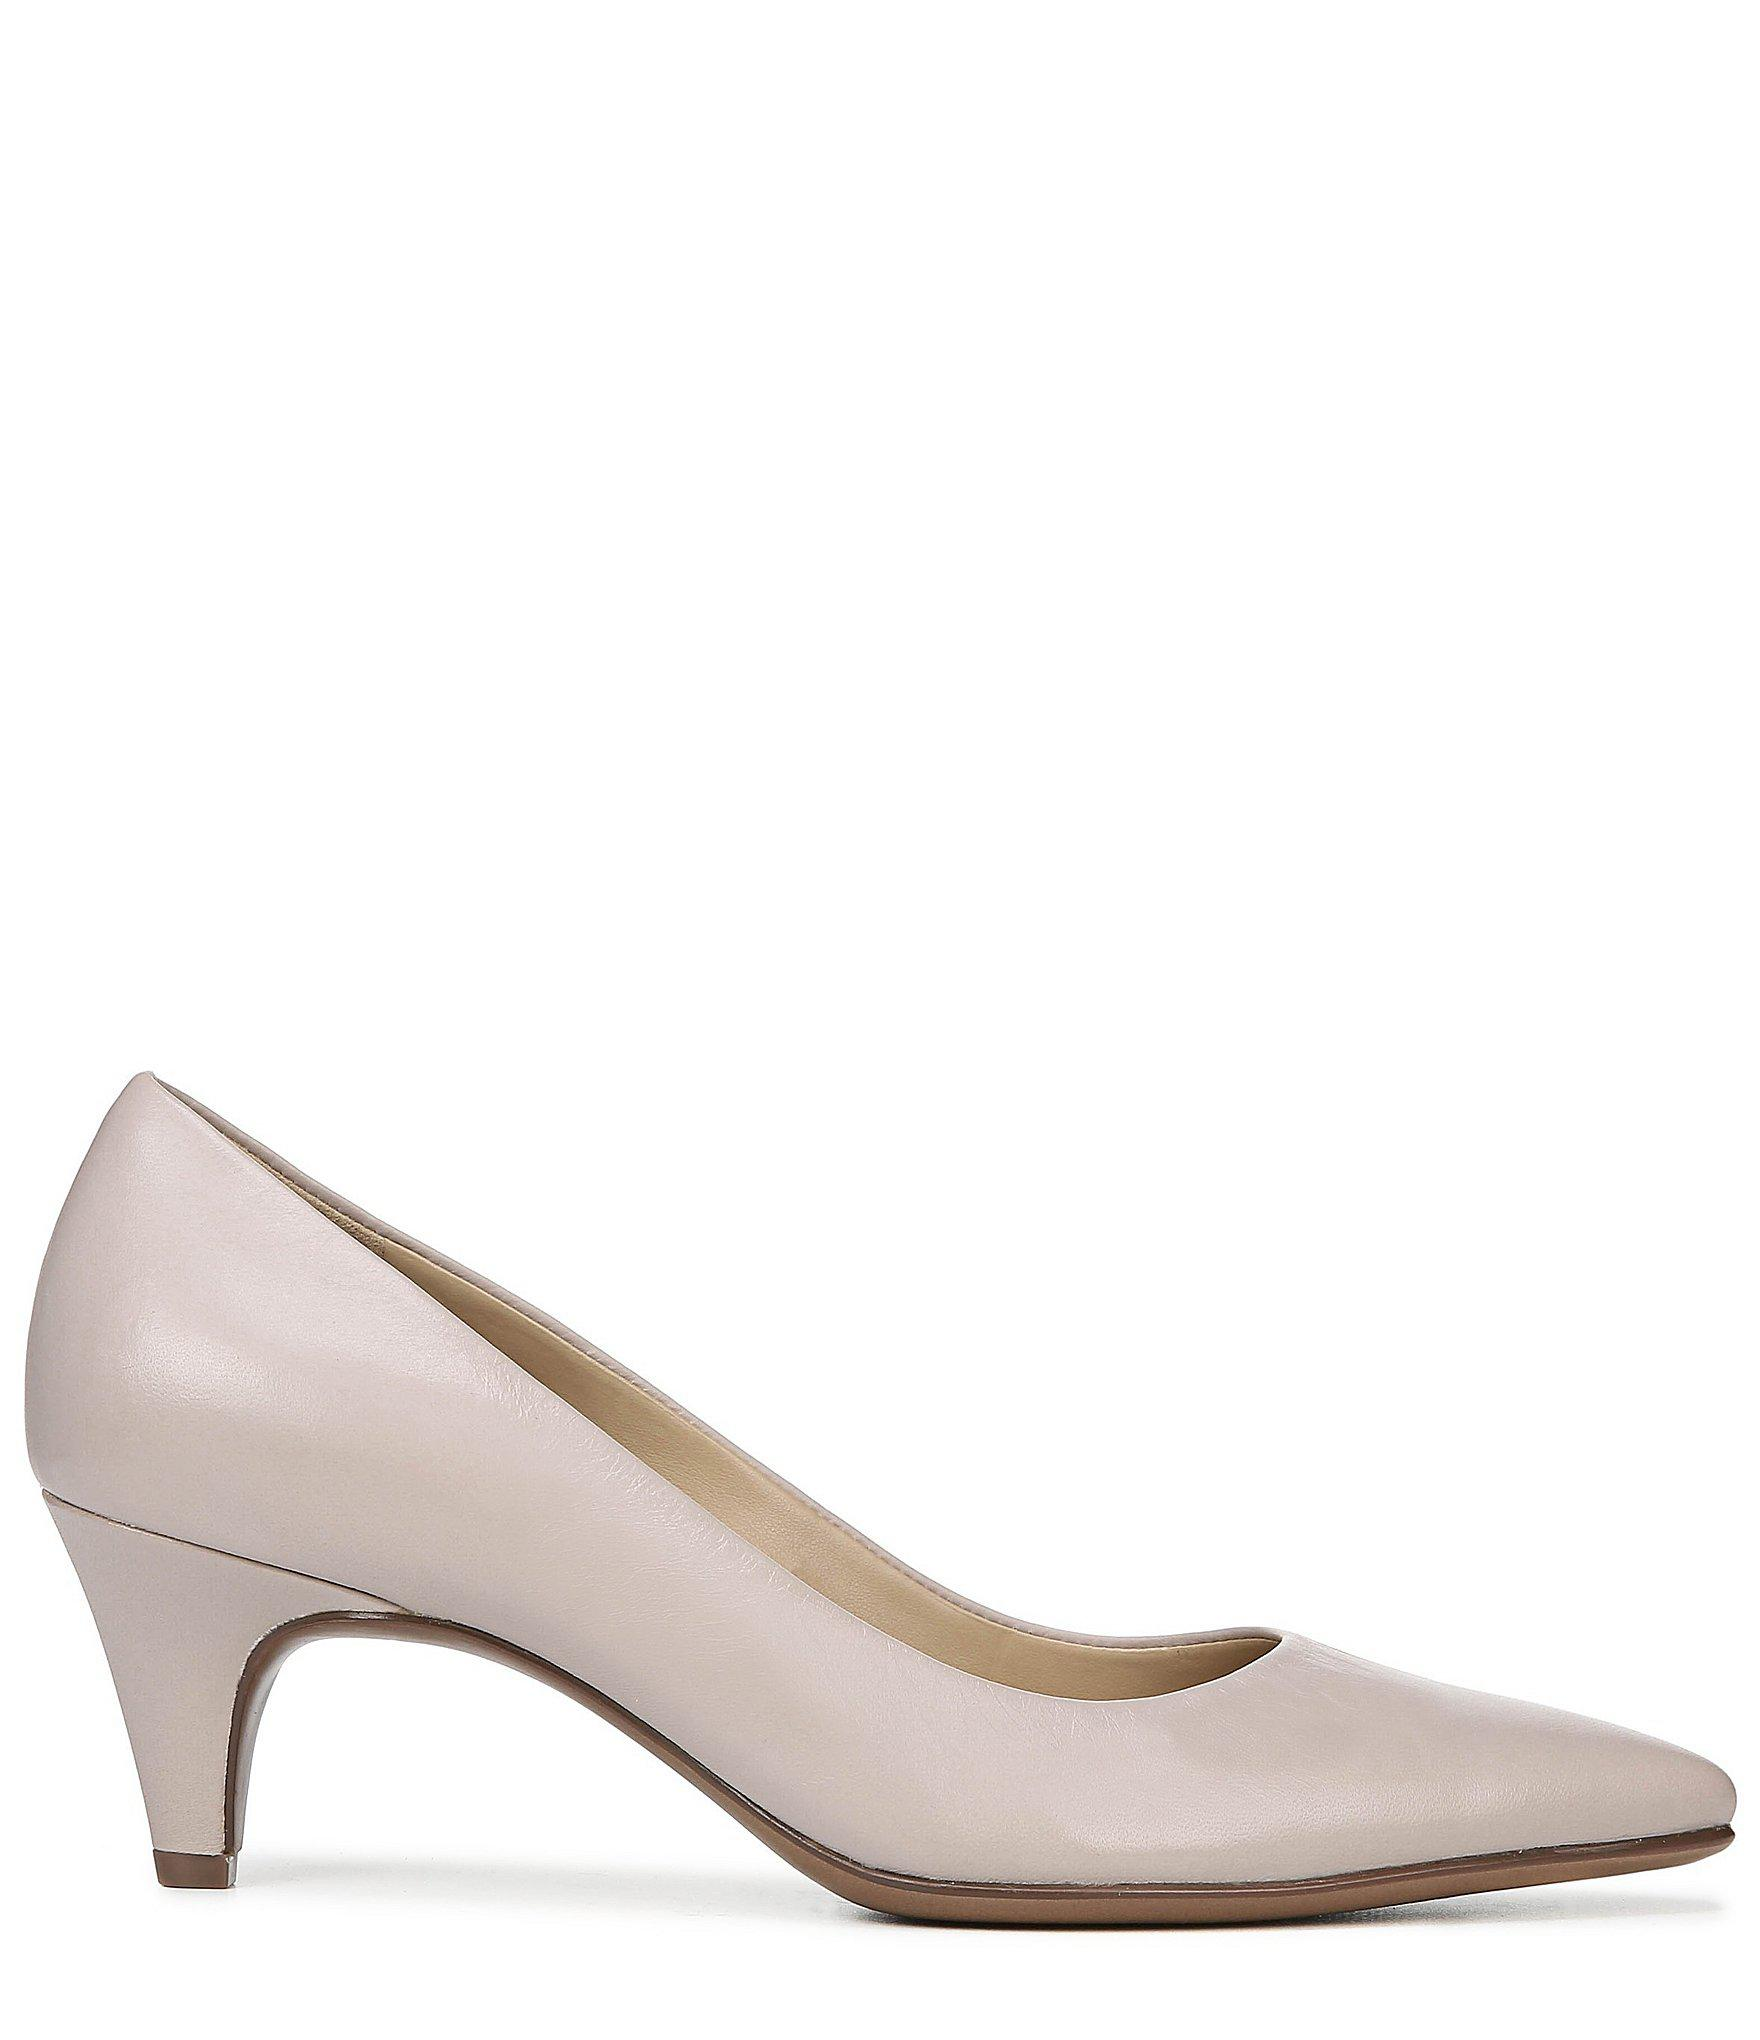 be57f5fd9307 Naturalizer - Multicolor Beverly Leather Kitten Heel Pumps - Lyst. View  fullscreen